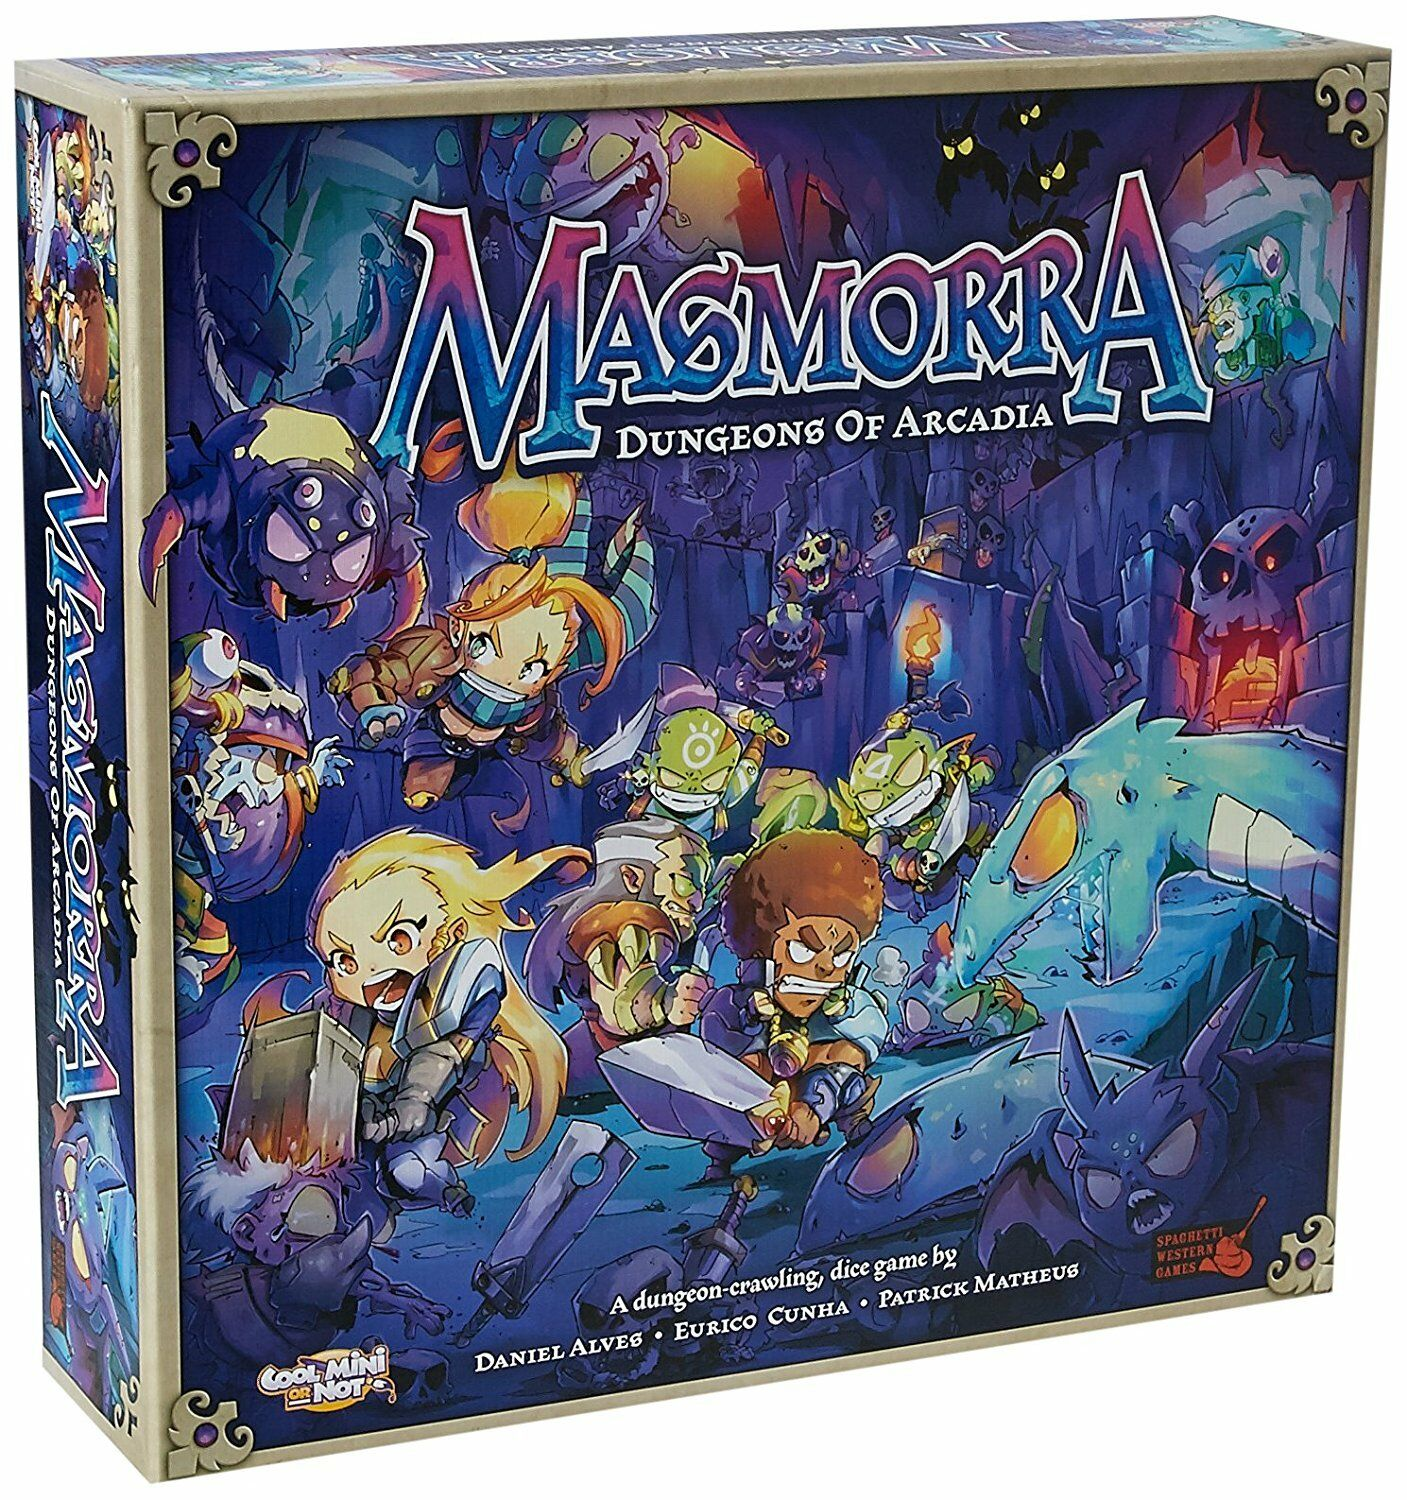 vendita outlet Masmorra Dungeons Of Arcadia tavola gioco Cool Mini Or Not Not Not CMON giocos COL MMR001  molte concessioni